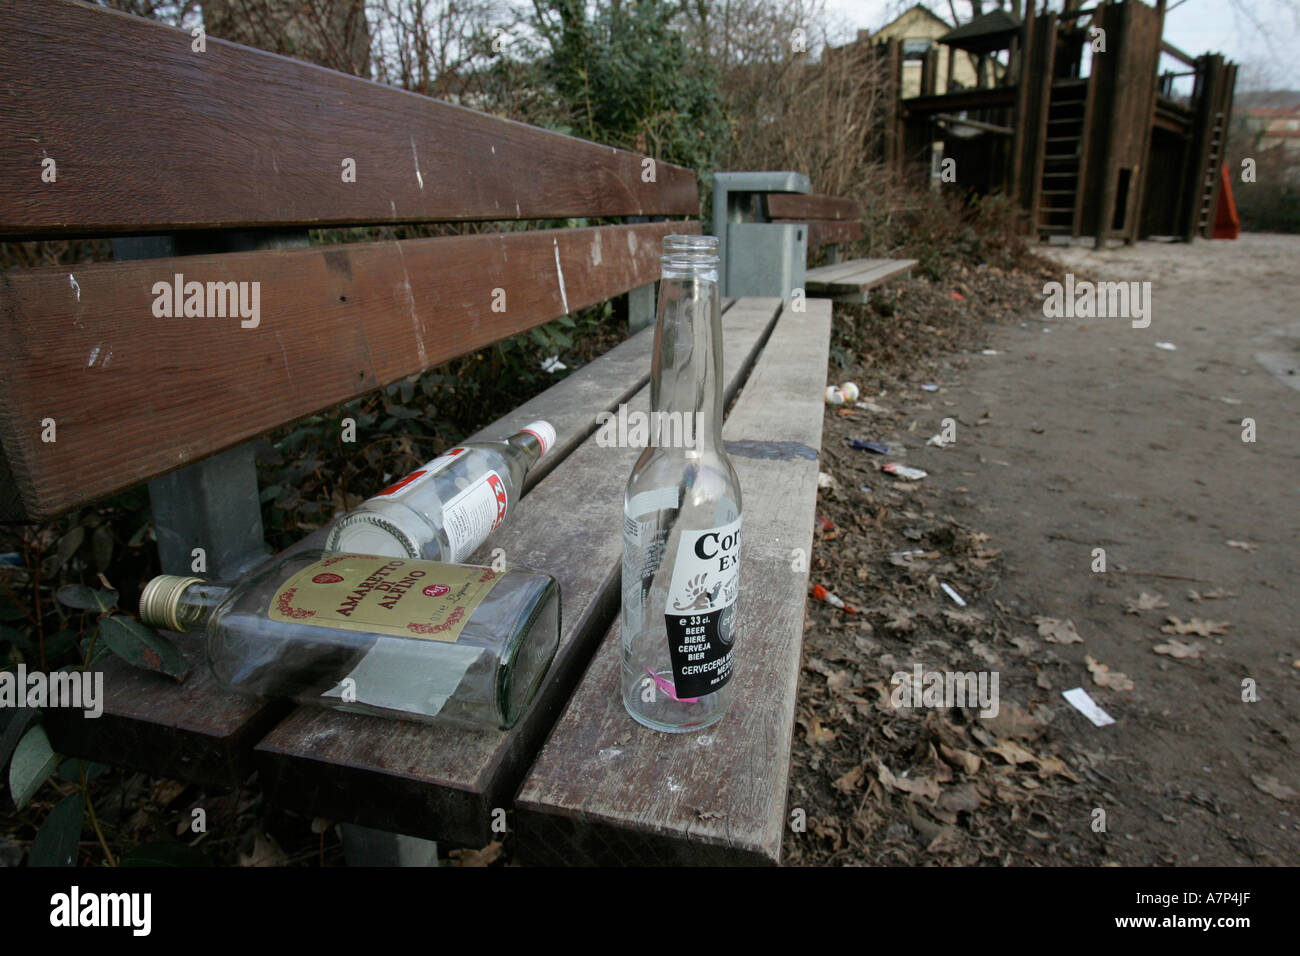 DEU, Germany, teenagers meet at playgrounds to drink alcohol, the empy bottles remain - Stock Image